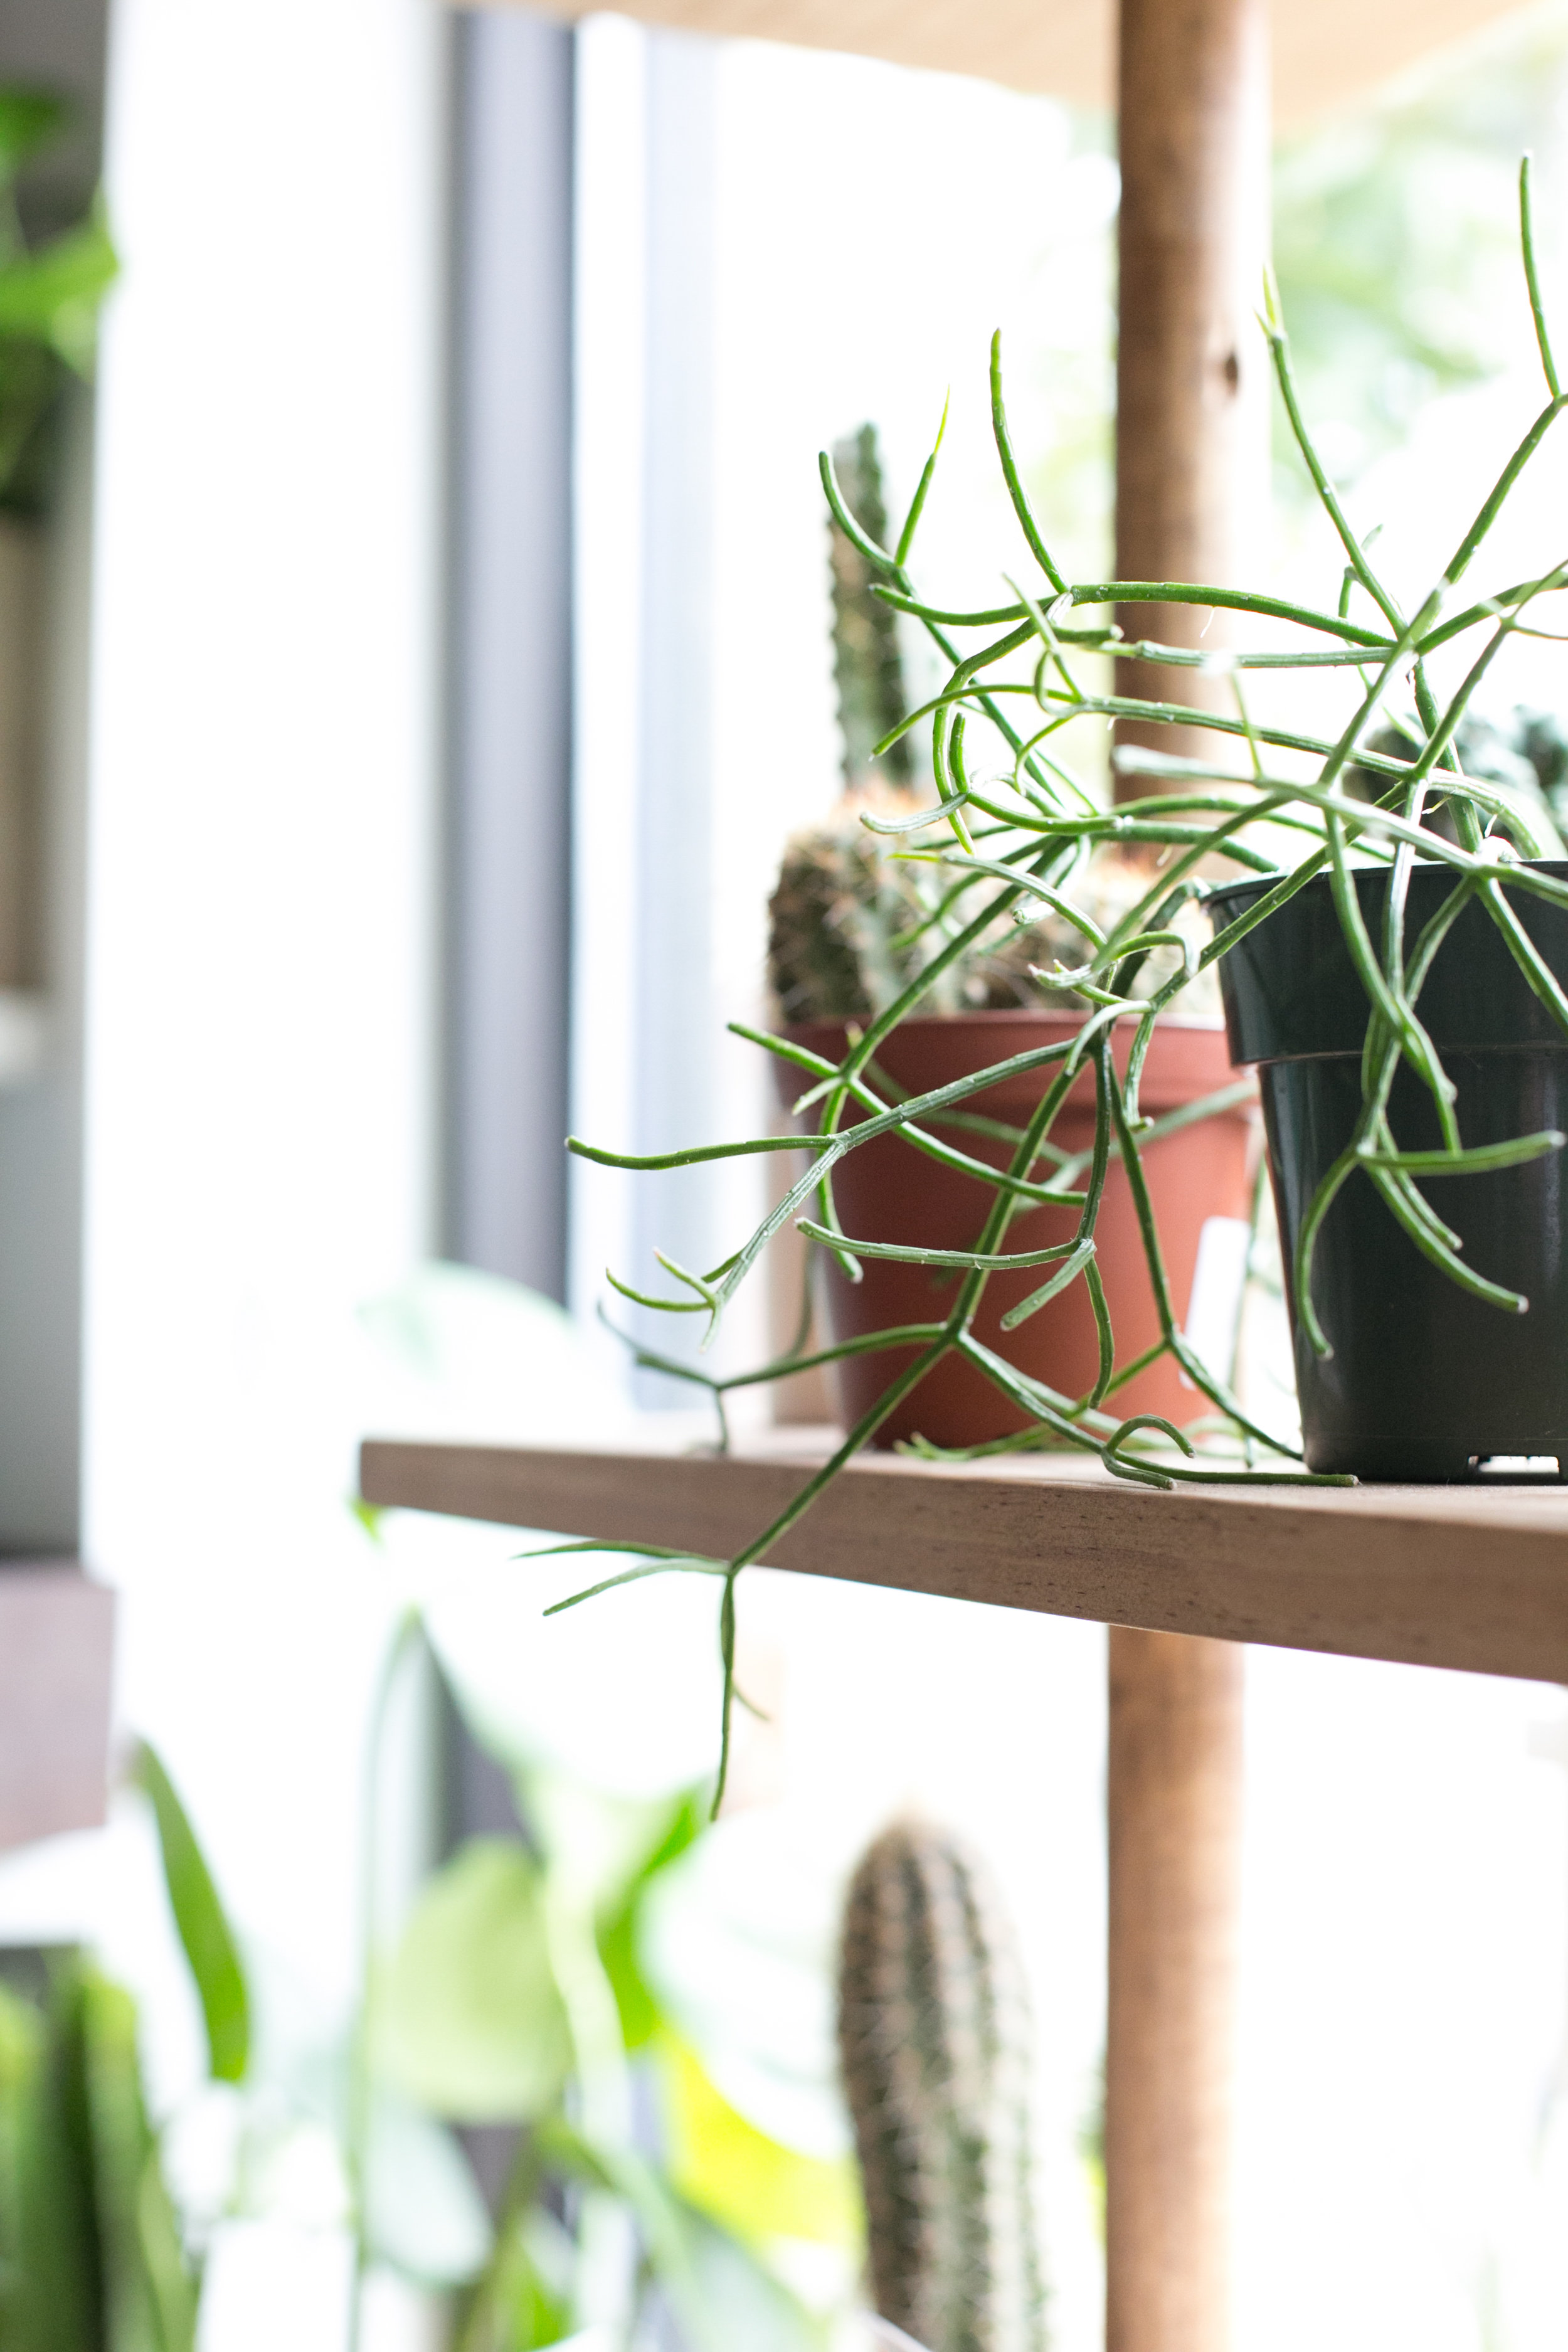 Hanging jungle cacti spaces make a great conversation piece for a well-lit room, or in a window above your kitchen sink.